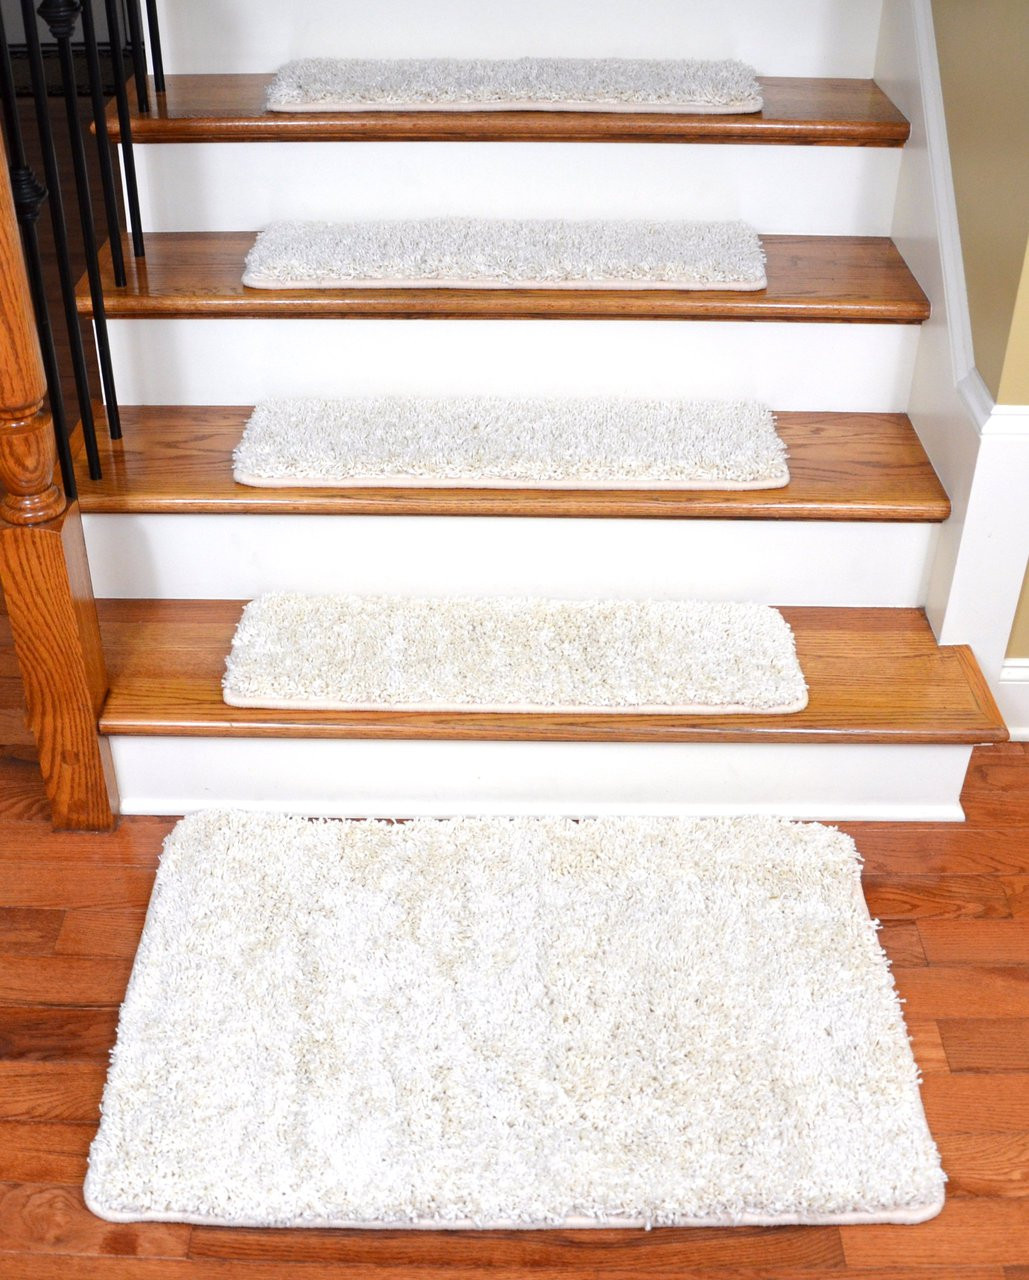 "Diy Stair Treads Out Of Flor Tiles: Dean Serged DIY Premium Carpet Stair Treads 30"" X 9"